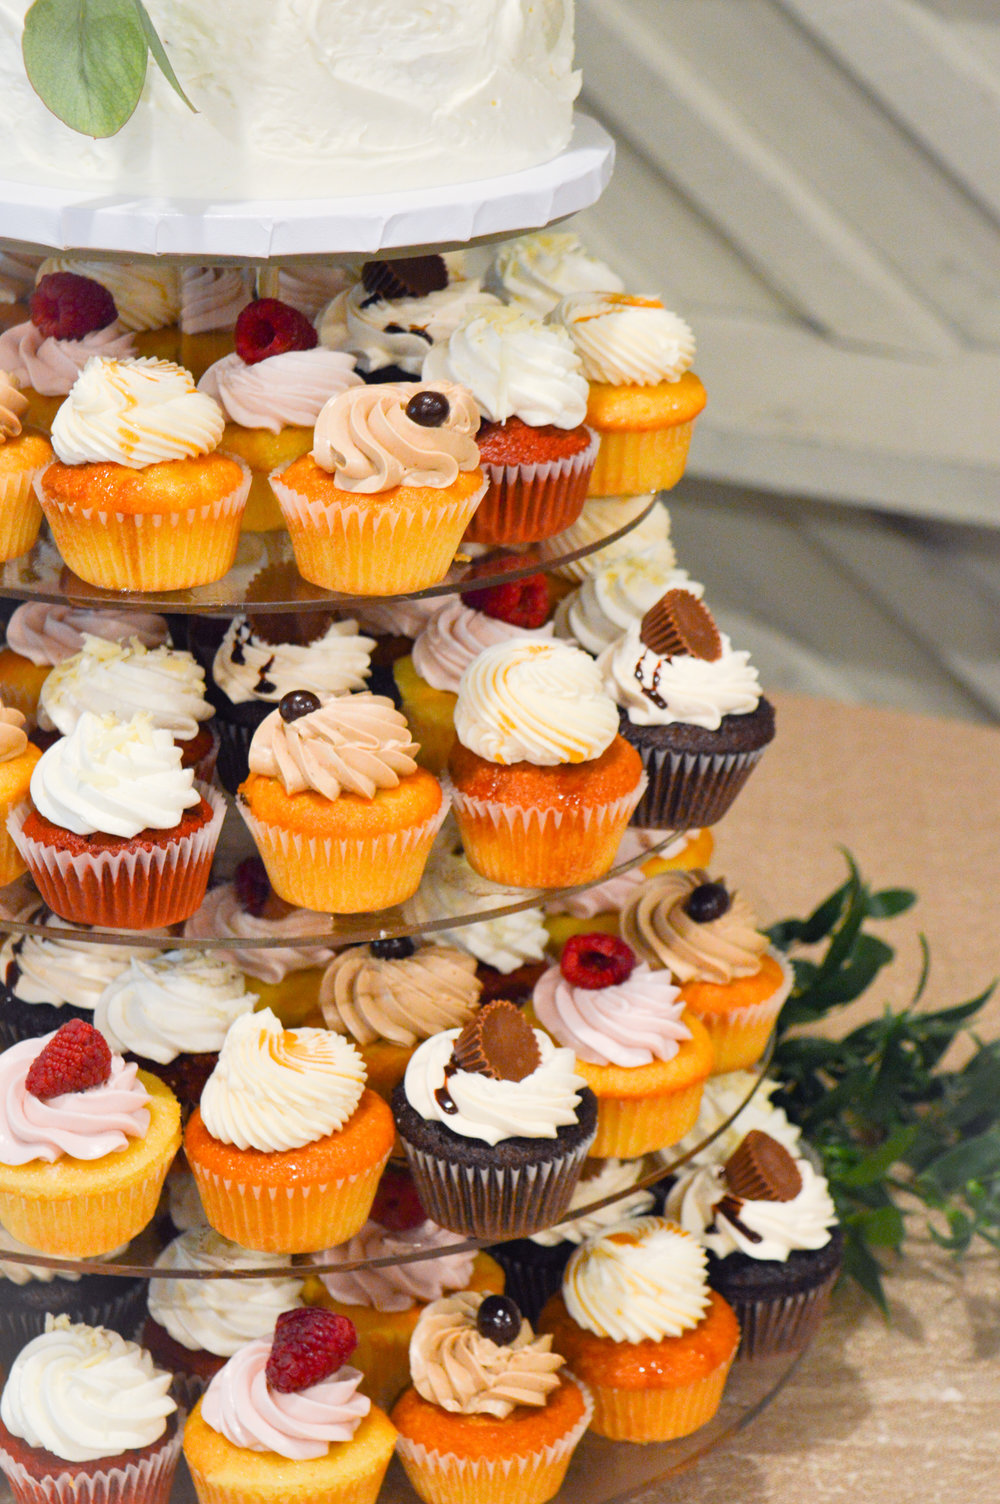 Assorted Cupcakes2.jpg